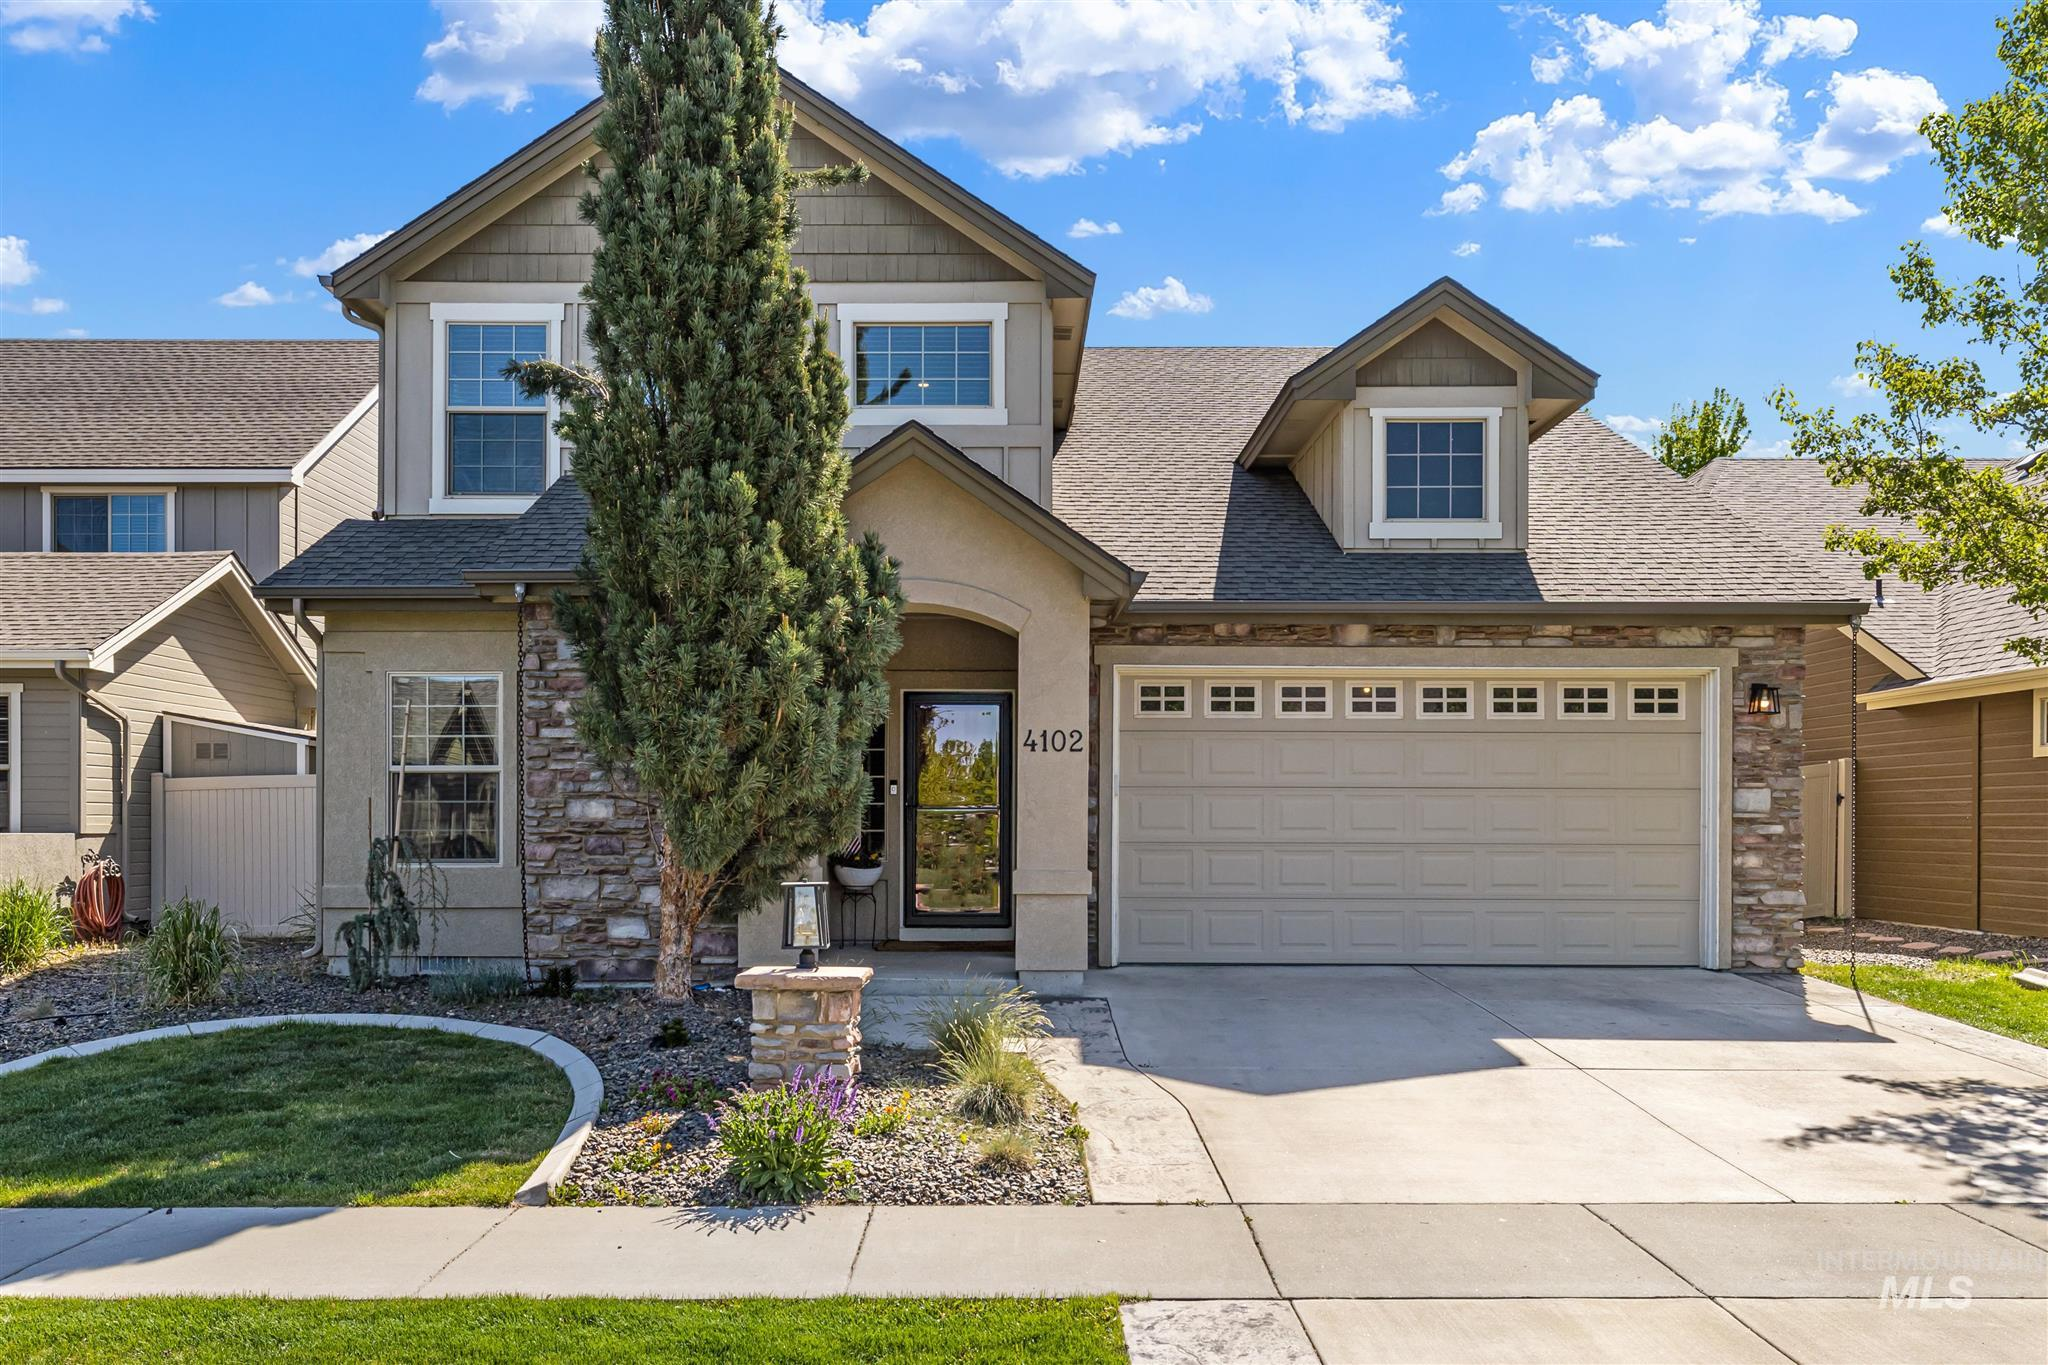 4102 S Burgo Property Photo - Meridian, ID real estate listing